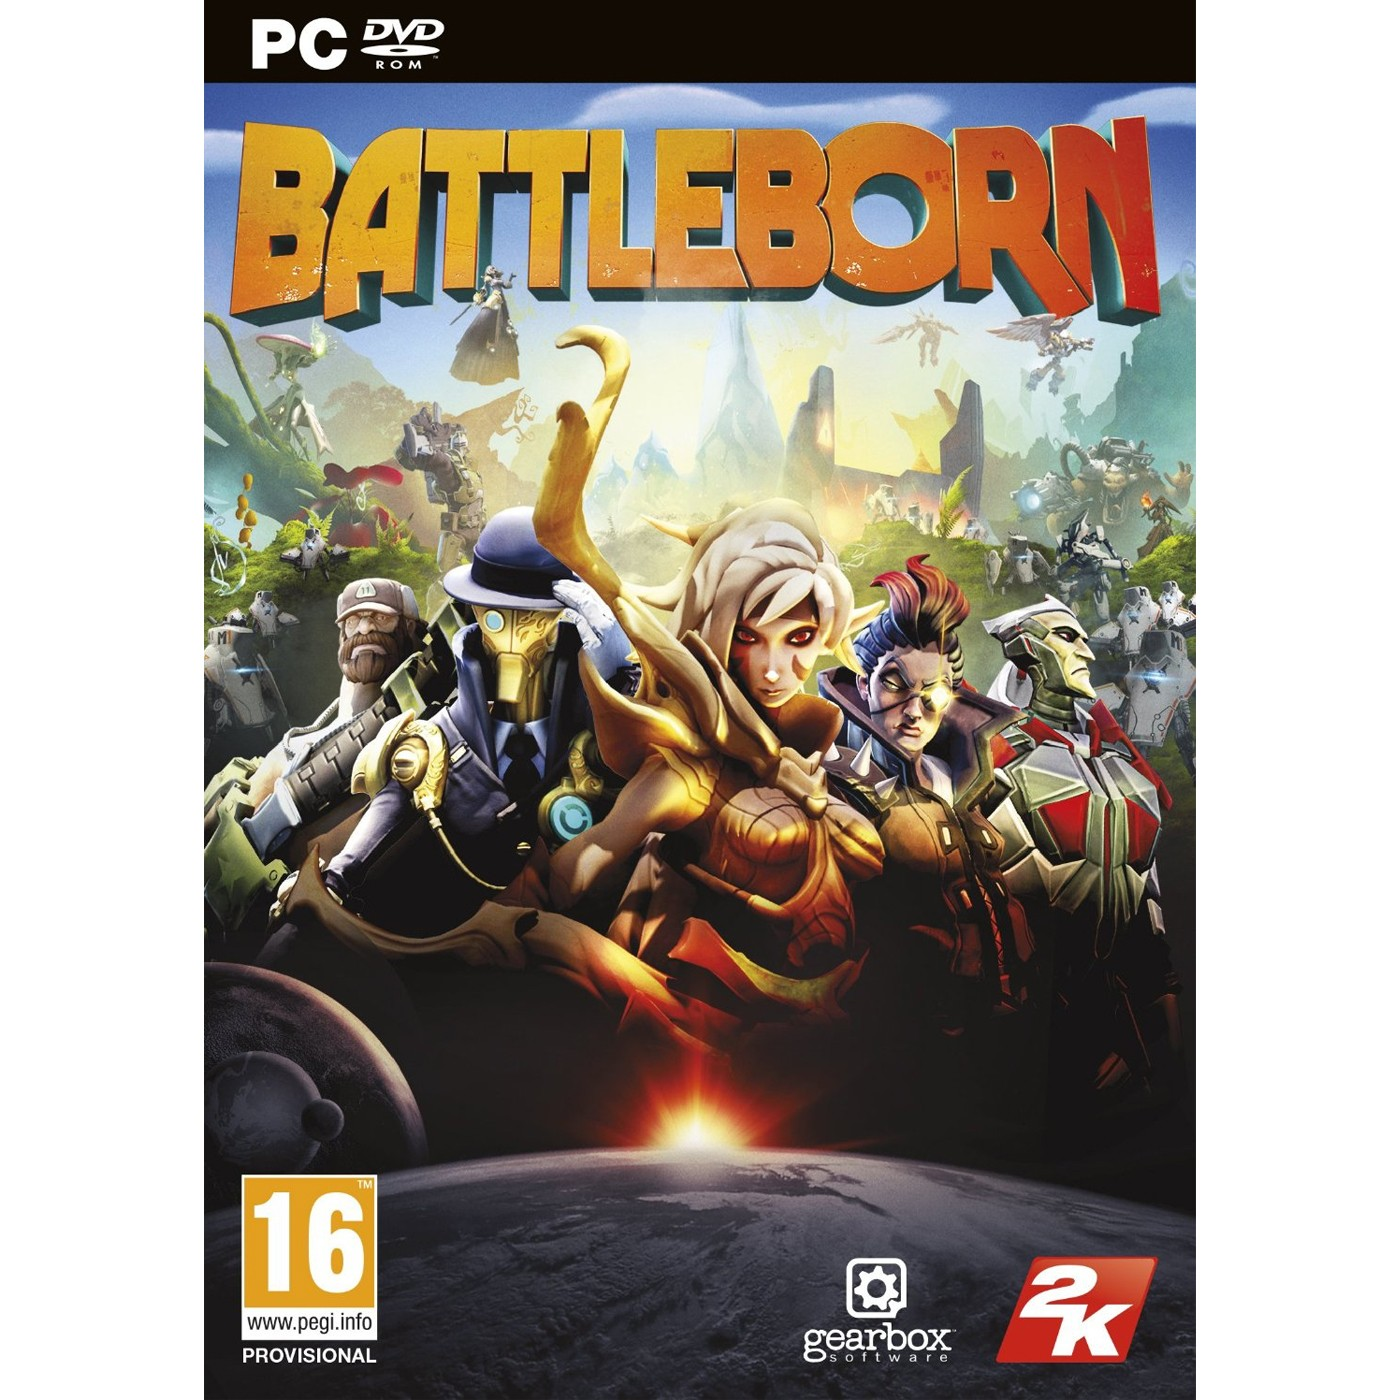 2K Games PC Battleborn